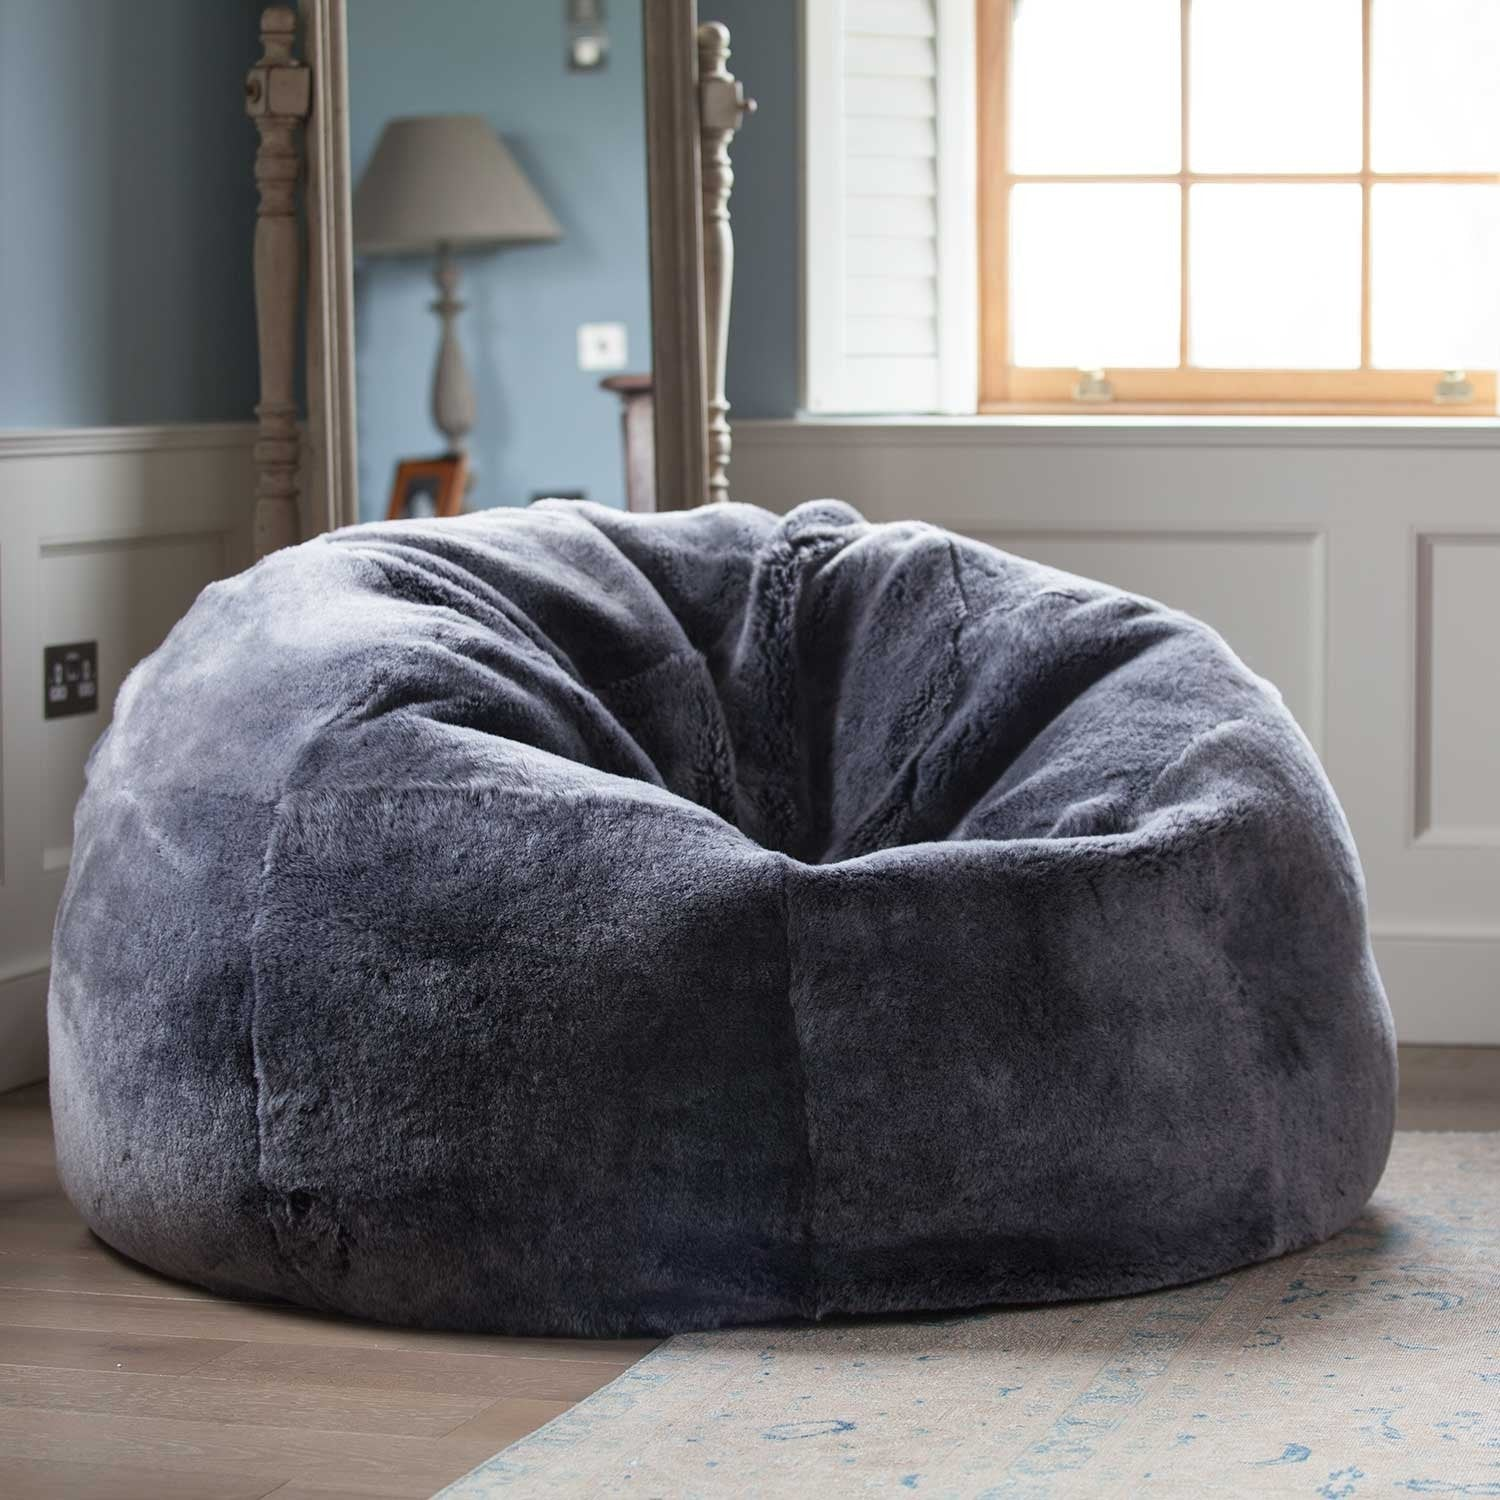 Admirable Giant Sheepskin Bean Bag Graphite Gmtry Best Dining Table And Chair Ideas Images Gmtryco